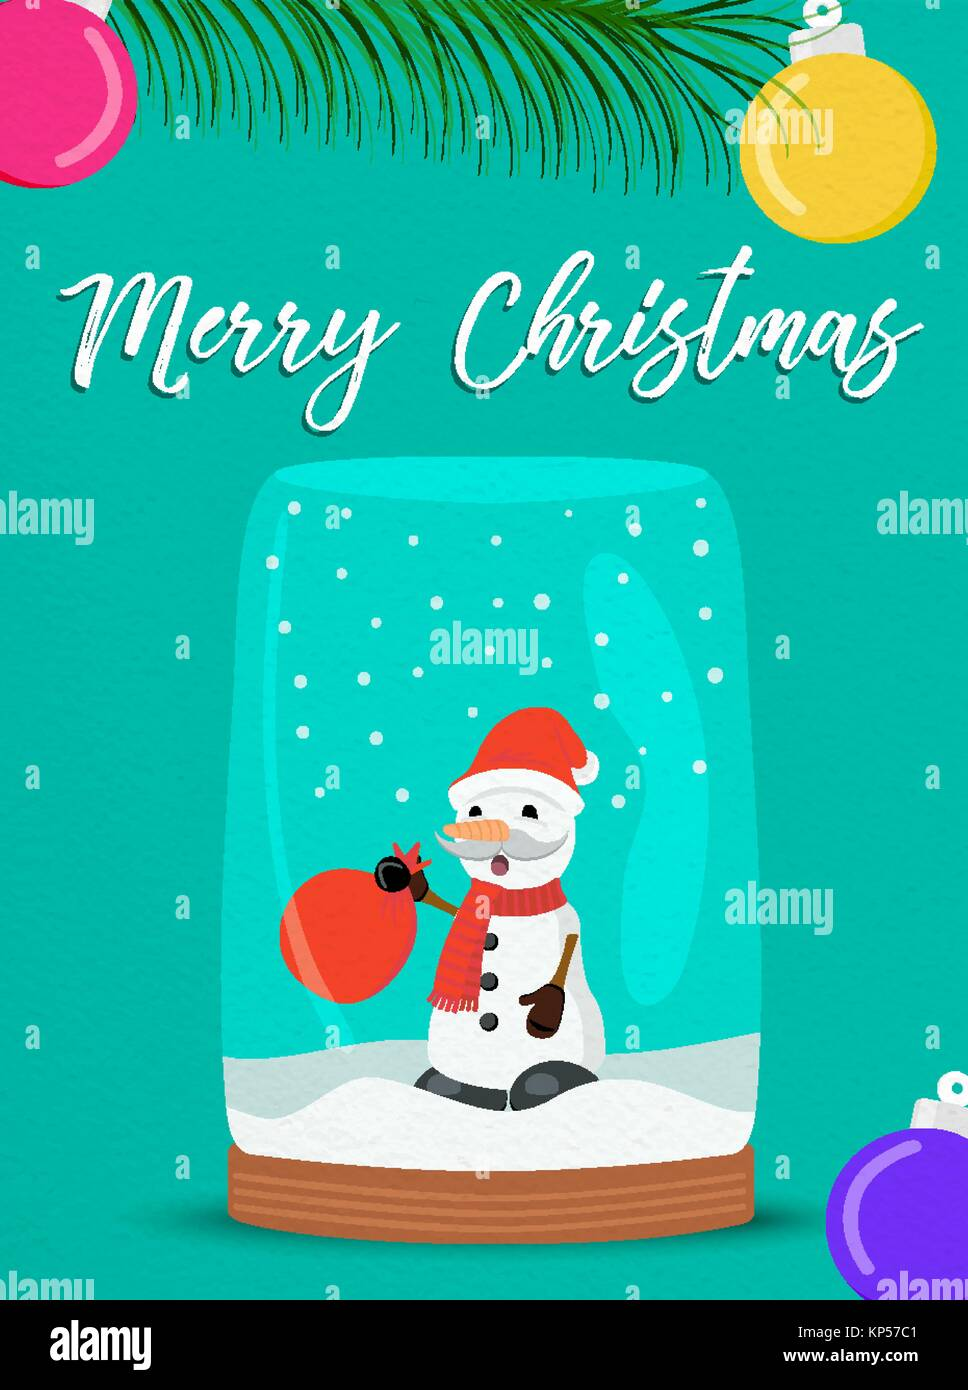 Merry Christmas Greeting Card With Snow Globe Illustration For Stock